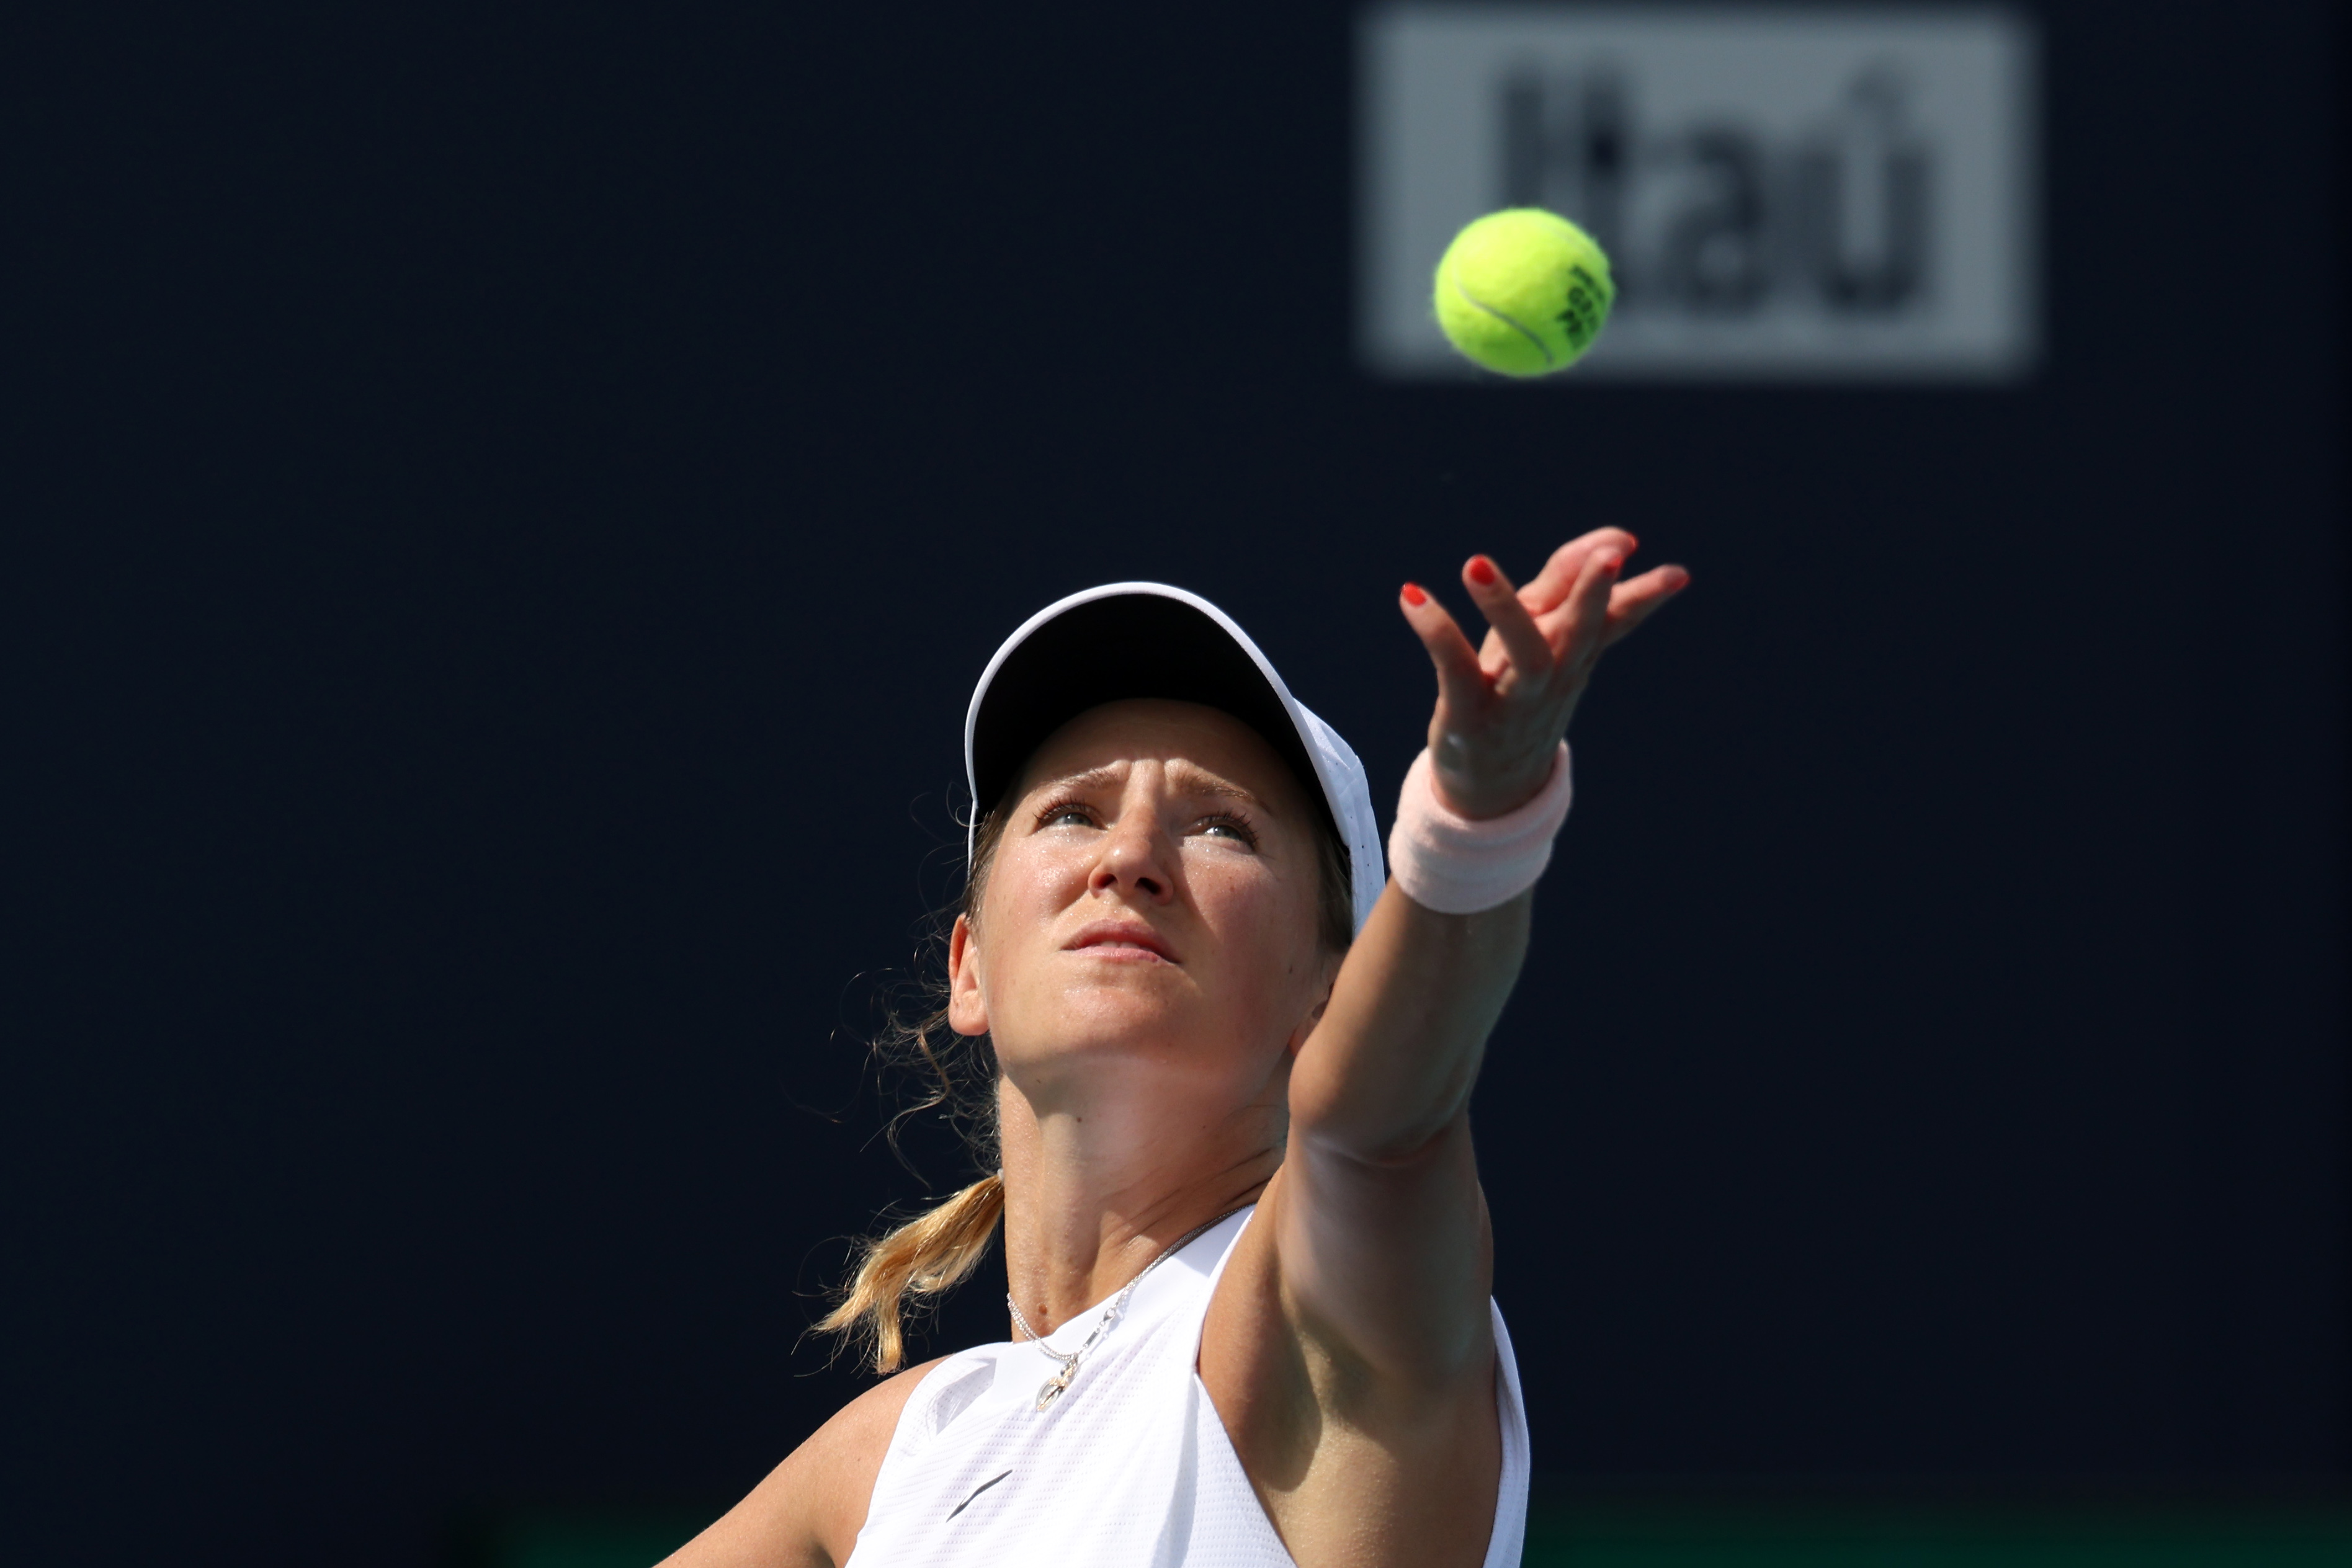 Mar 29, 2021; Miami, Florida, USA; Victoria Azarenka of Belarus serves against Ashleigh Barty of Australia (not pictured) in the fourth round in the Miami Open at Hard Rock Stadium. Mandatory Credit: Geoff Burke-USA TODAY Sports